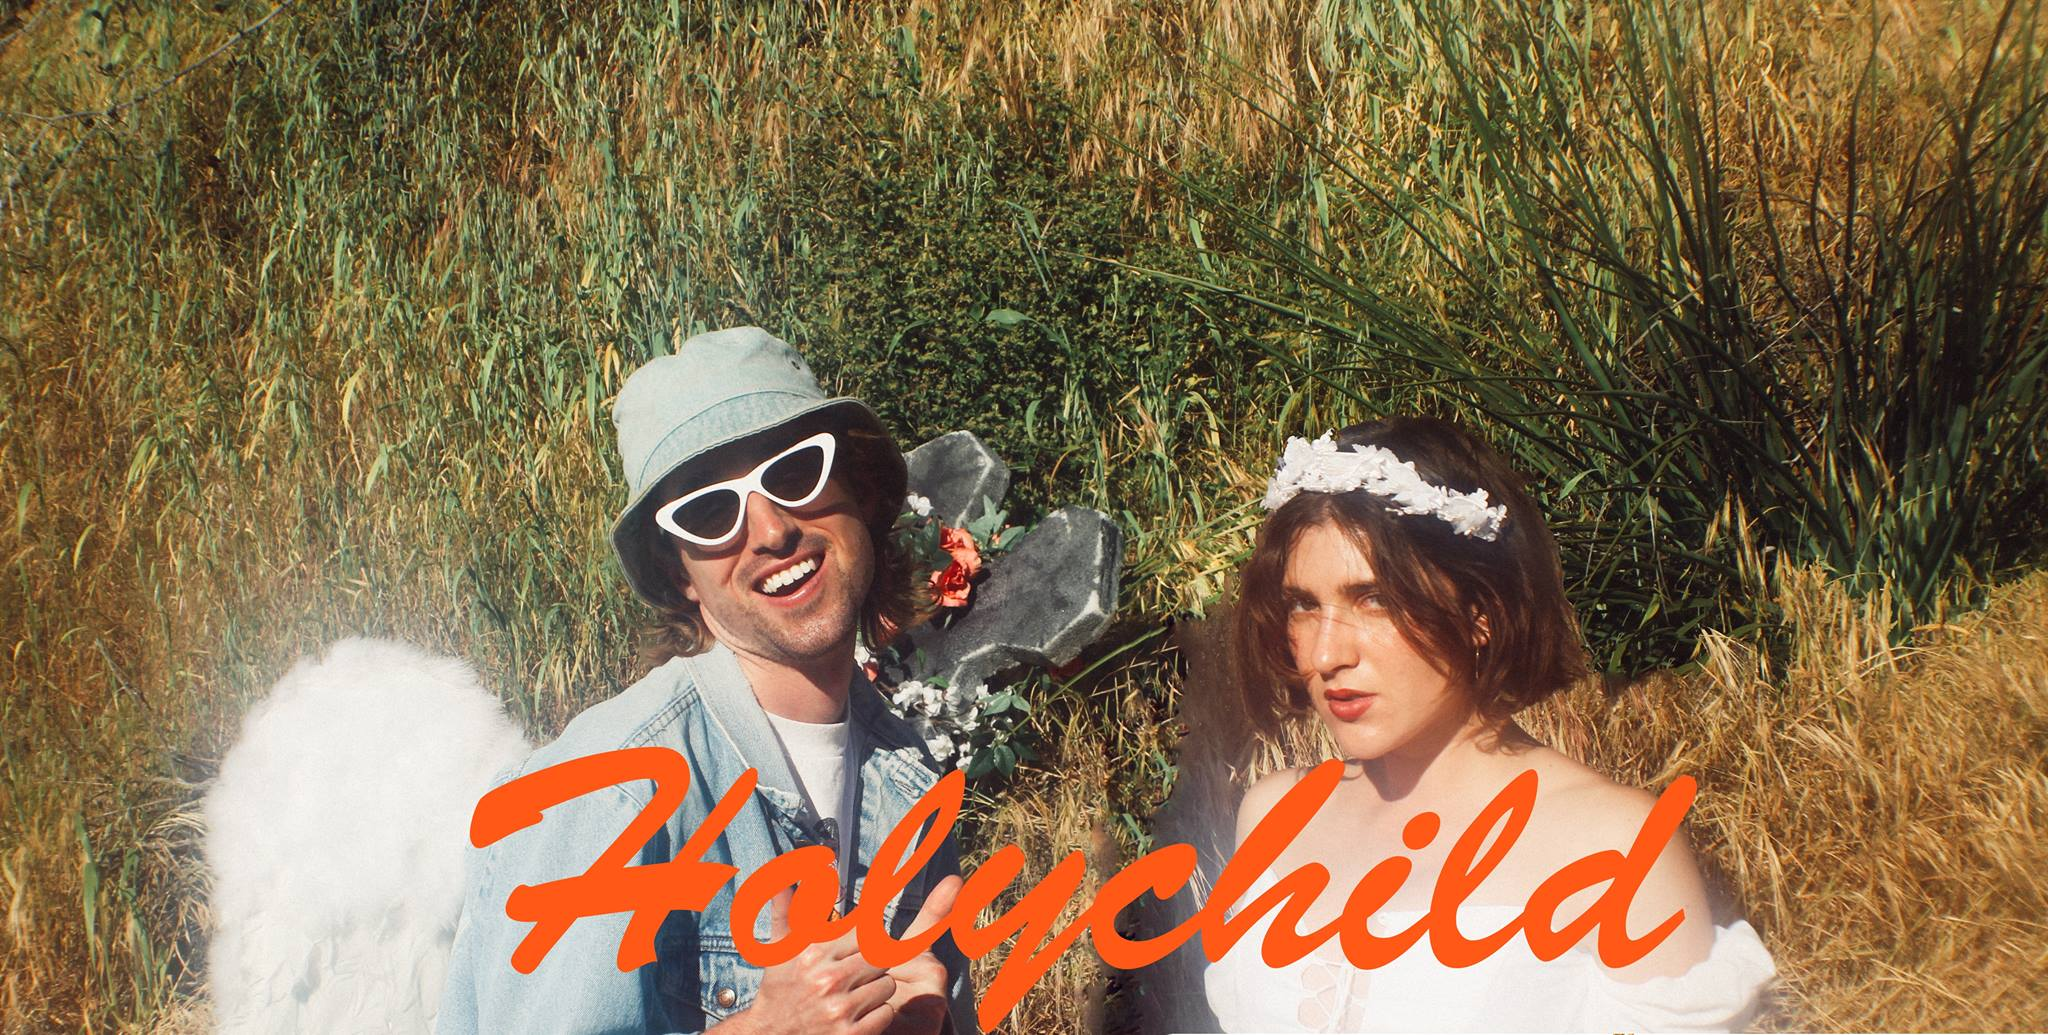 new music alert-wishing you away-by-holychild-indie music-new music-indie pop-music blog-indie blog-wolf in a suit-wolfinasuit-wolf in a suit blog-wolf in a suit music blog